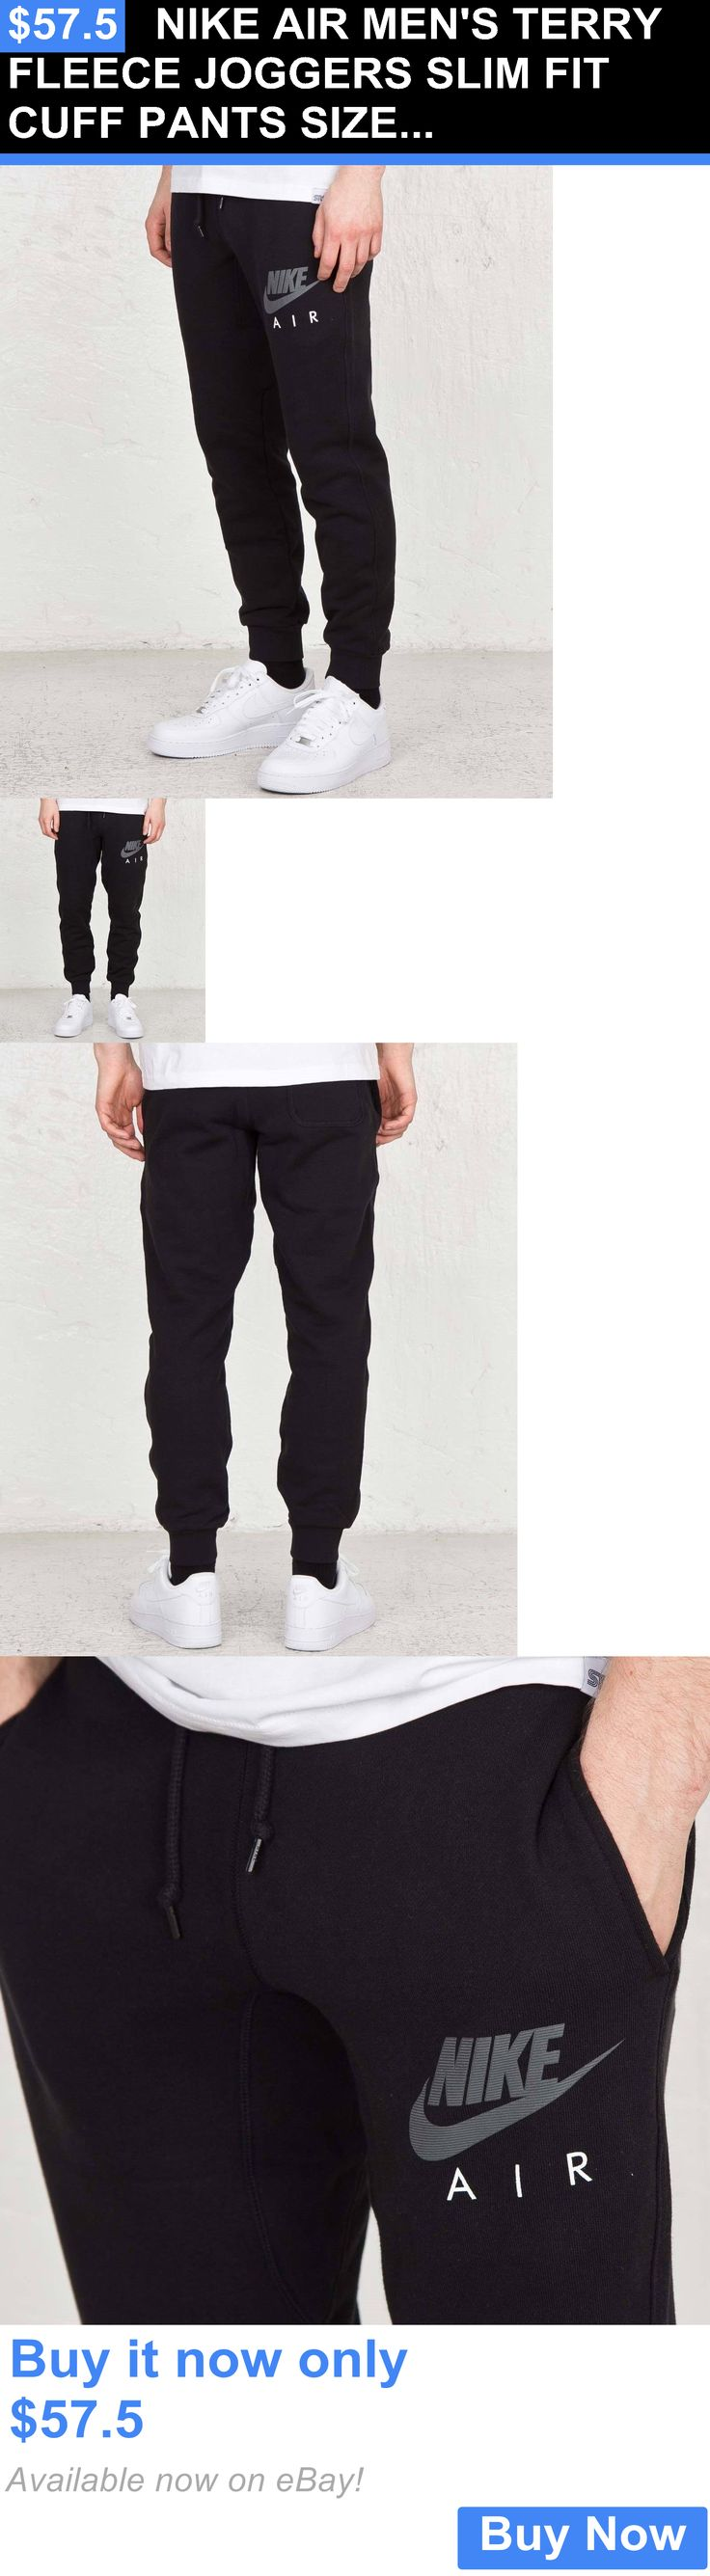 Men Athletics: Nike Air Mens Terry Fleece Joggers Slim Fit Cuff Pants Size Large Black New BUY IT NOW ONLY: $57.5